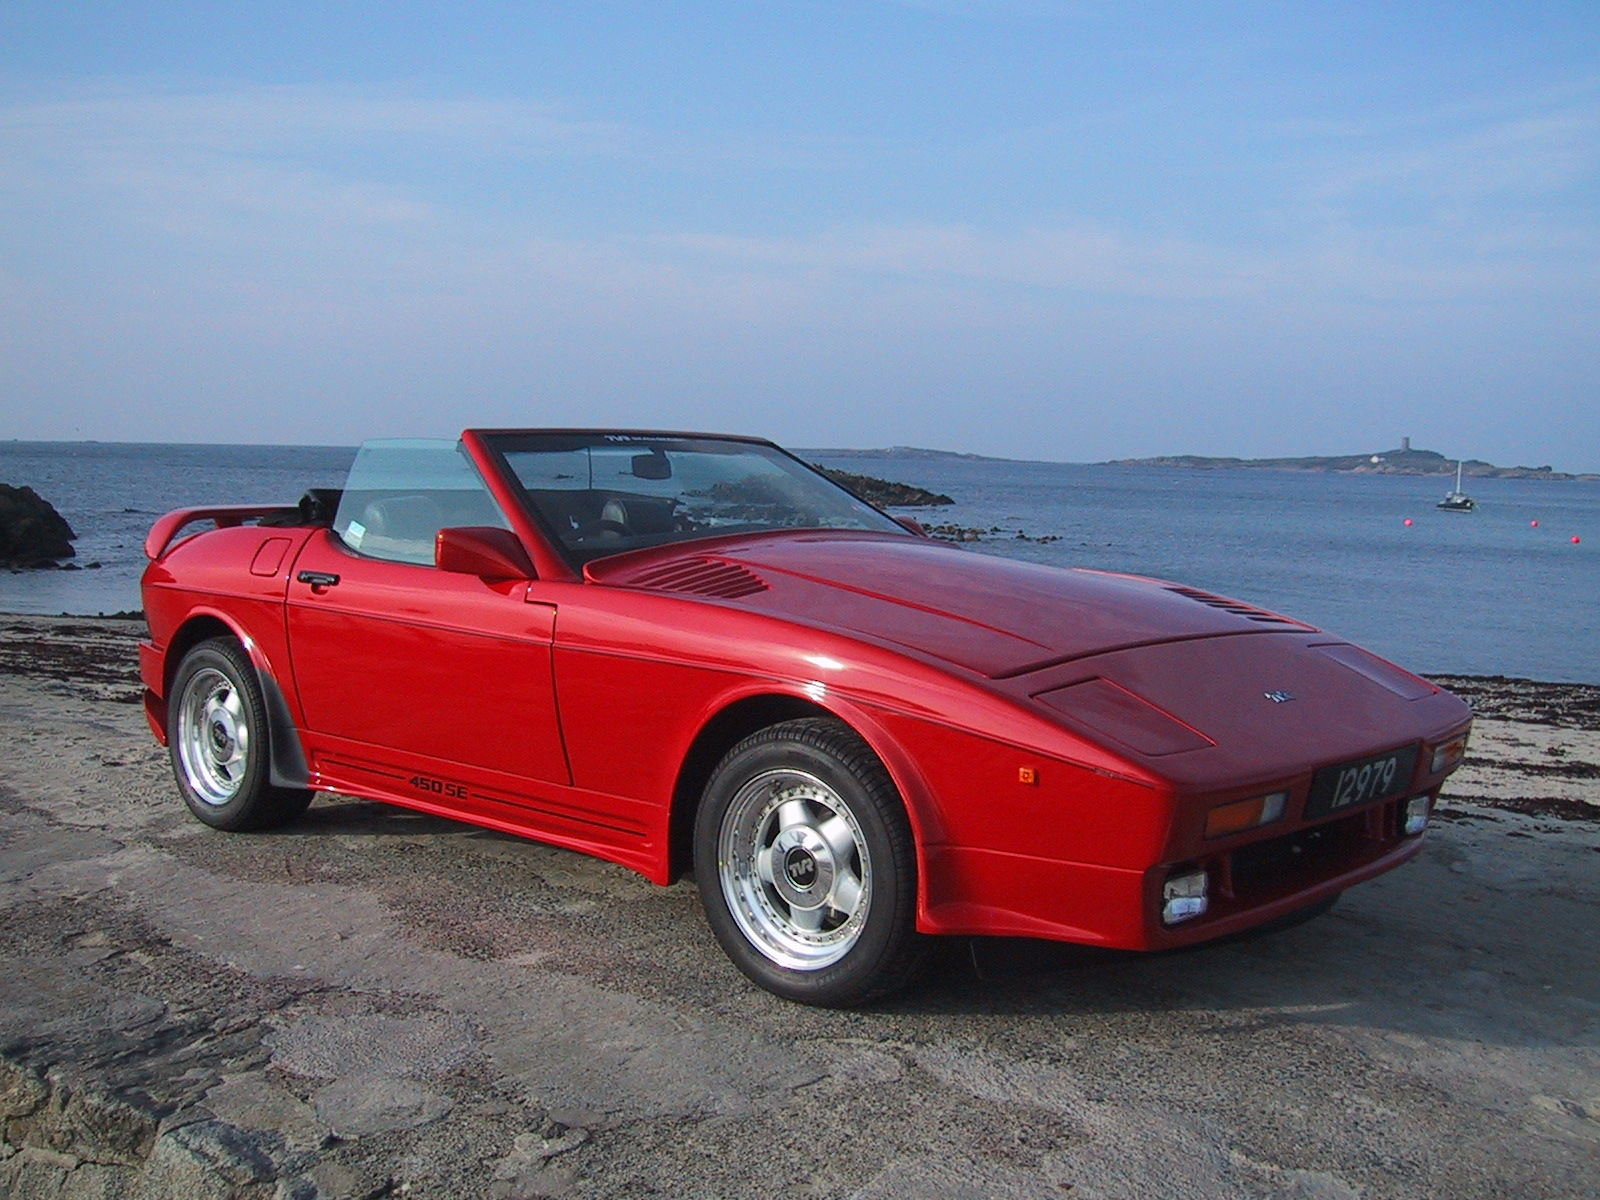 Pictures of tvr 450 1990